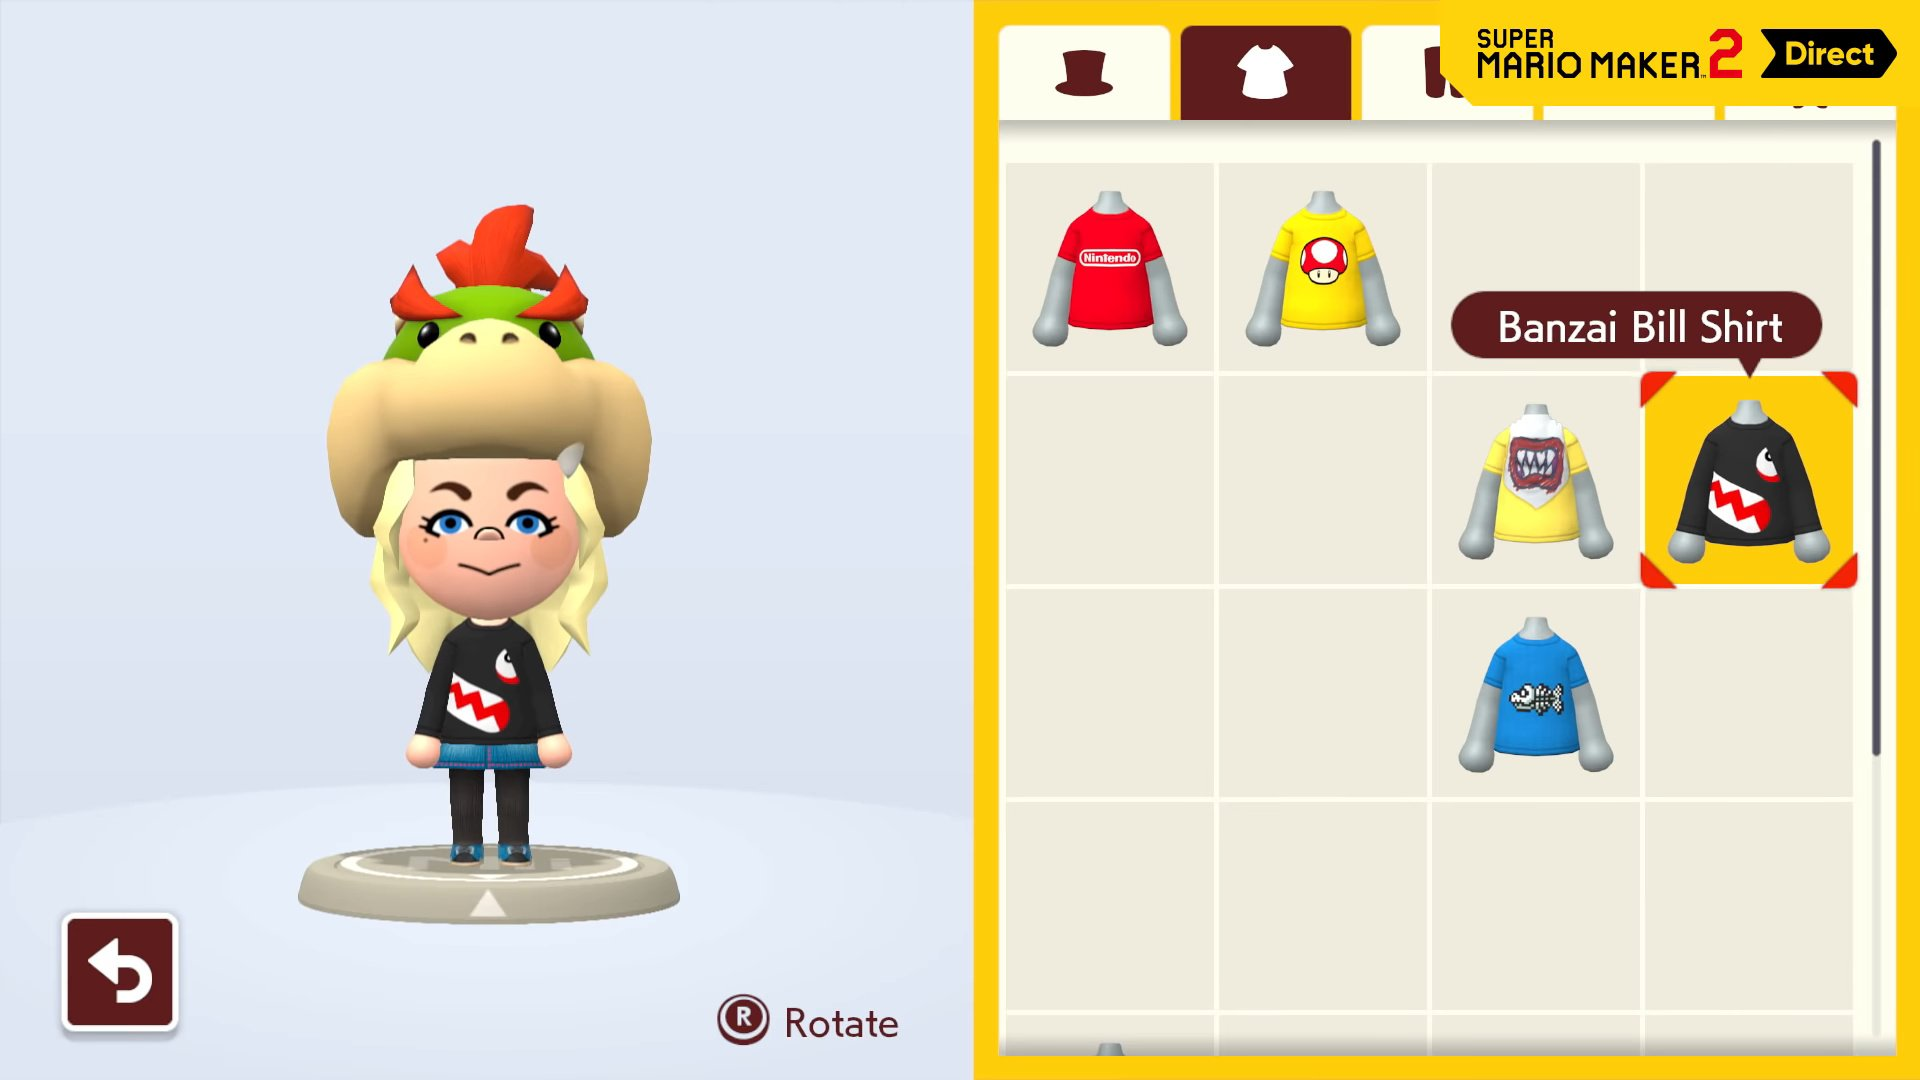 build and play together in super mario maker 2's